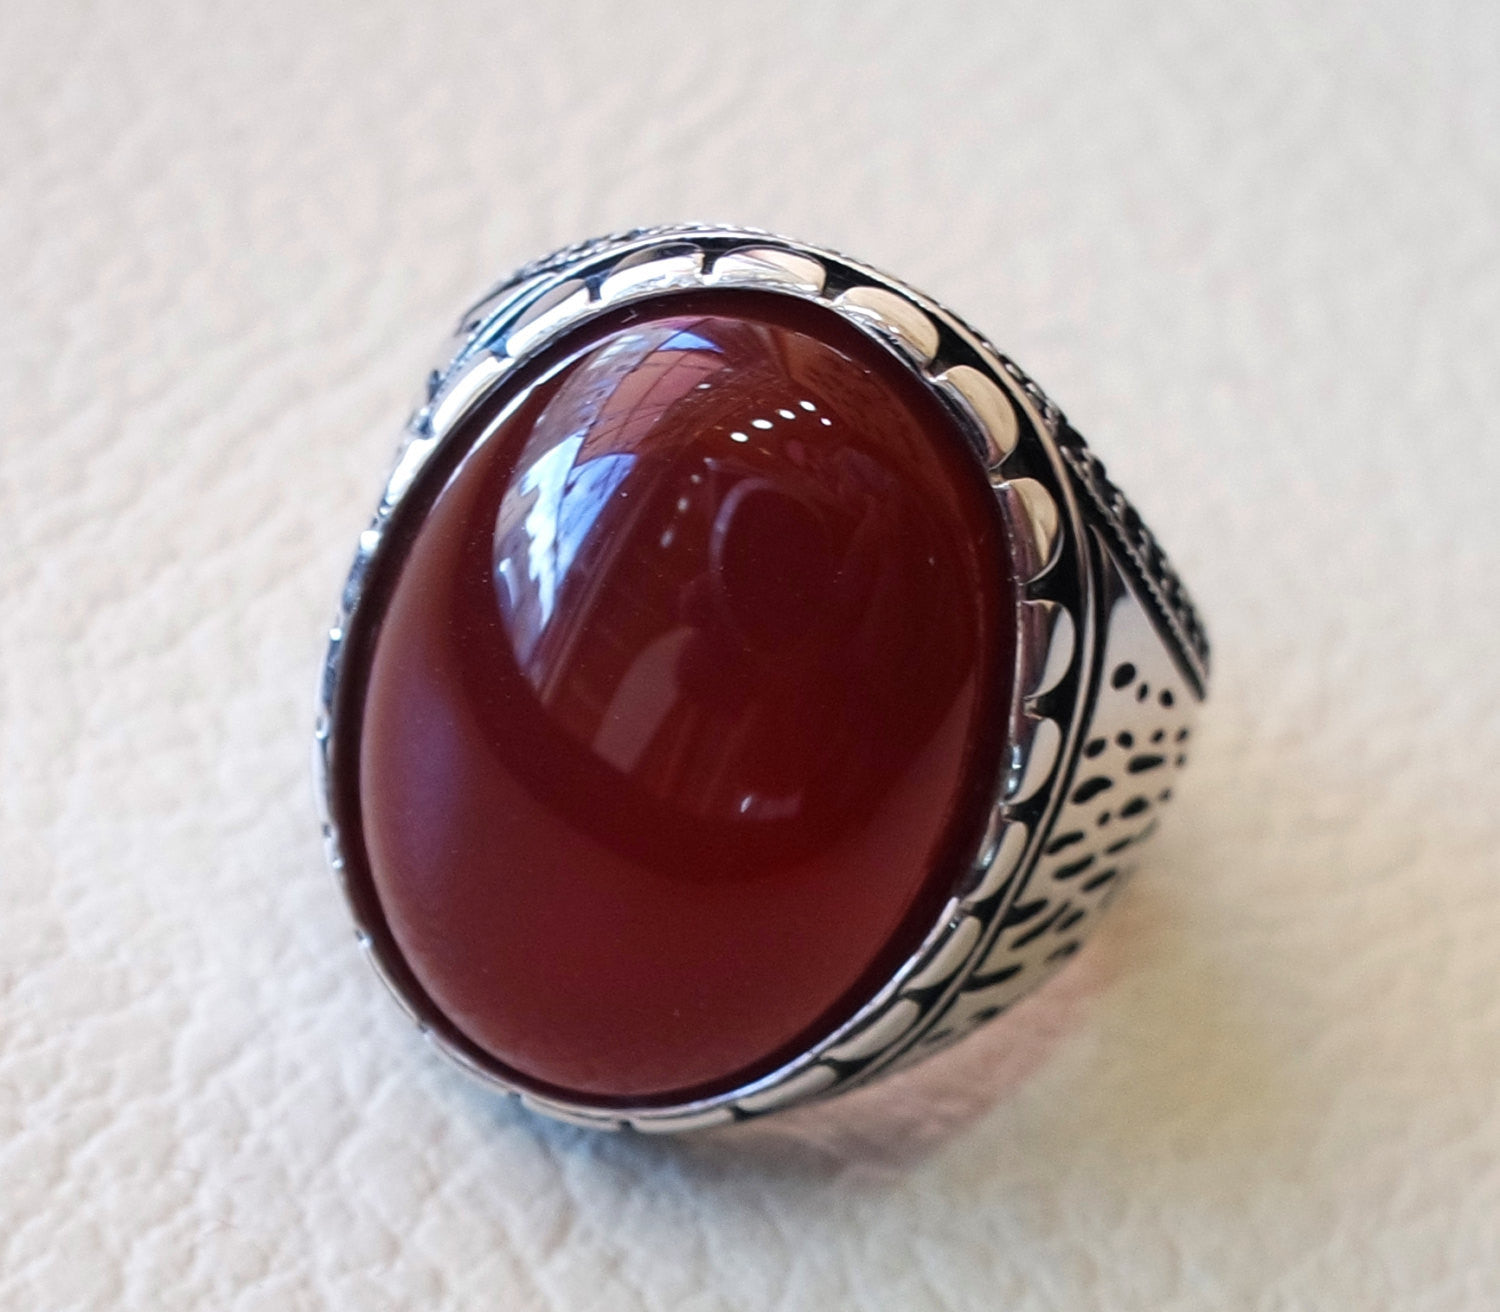 liver agate carnelian yemeni aqeeq ring sterling silver 925 dark red semi precious natural gemstone men jewelry any size middle eastern